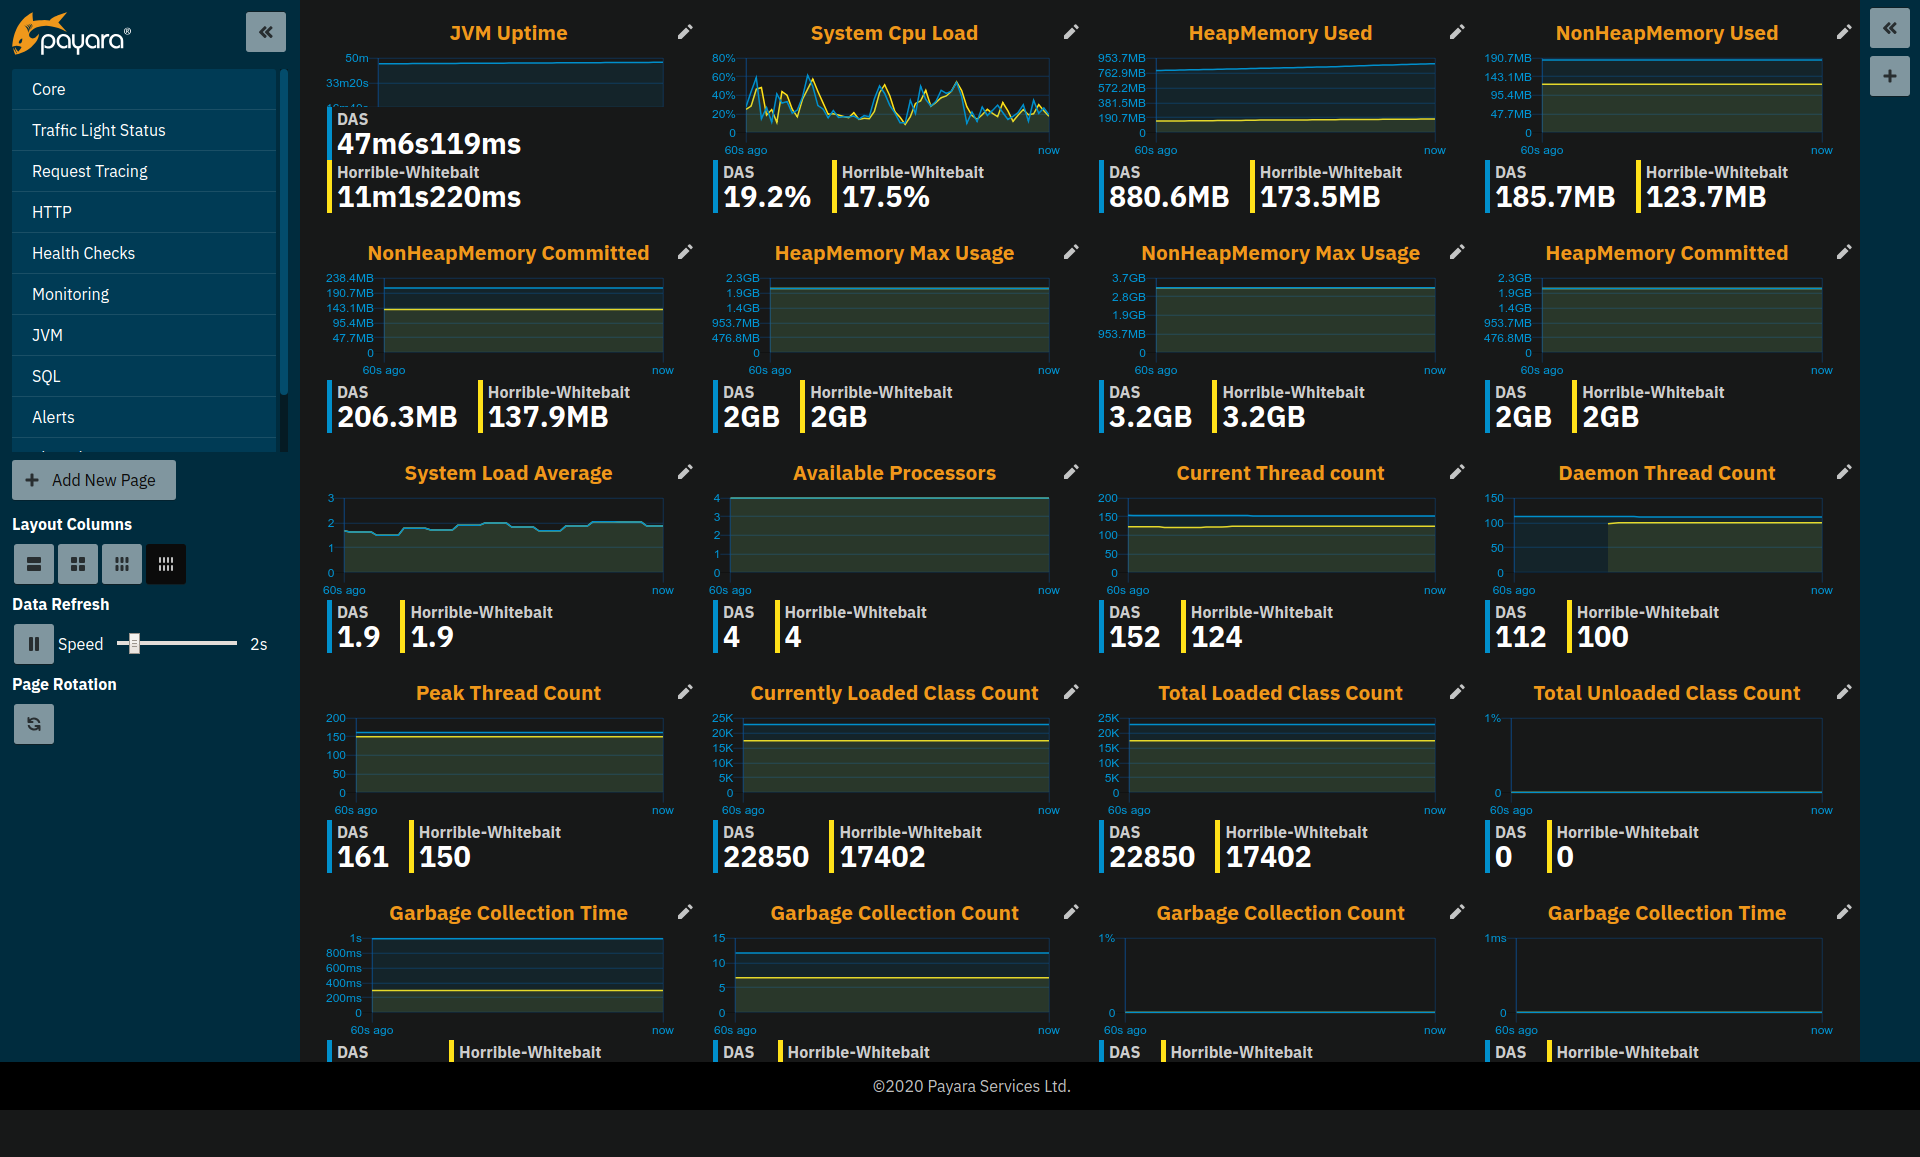 Application Metrics Page